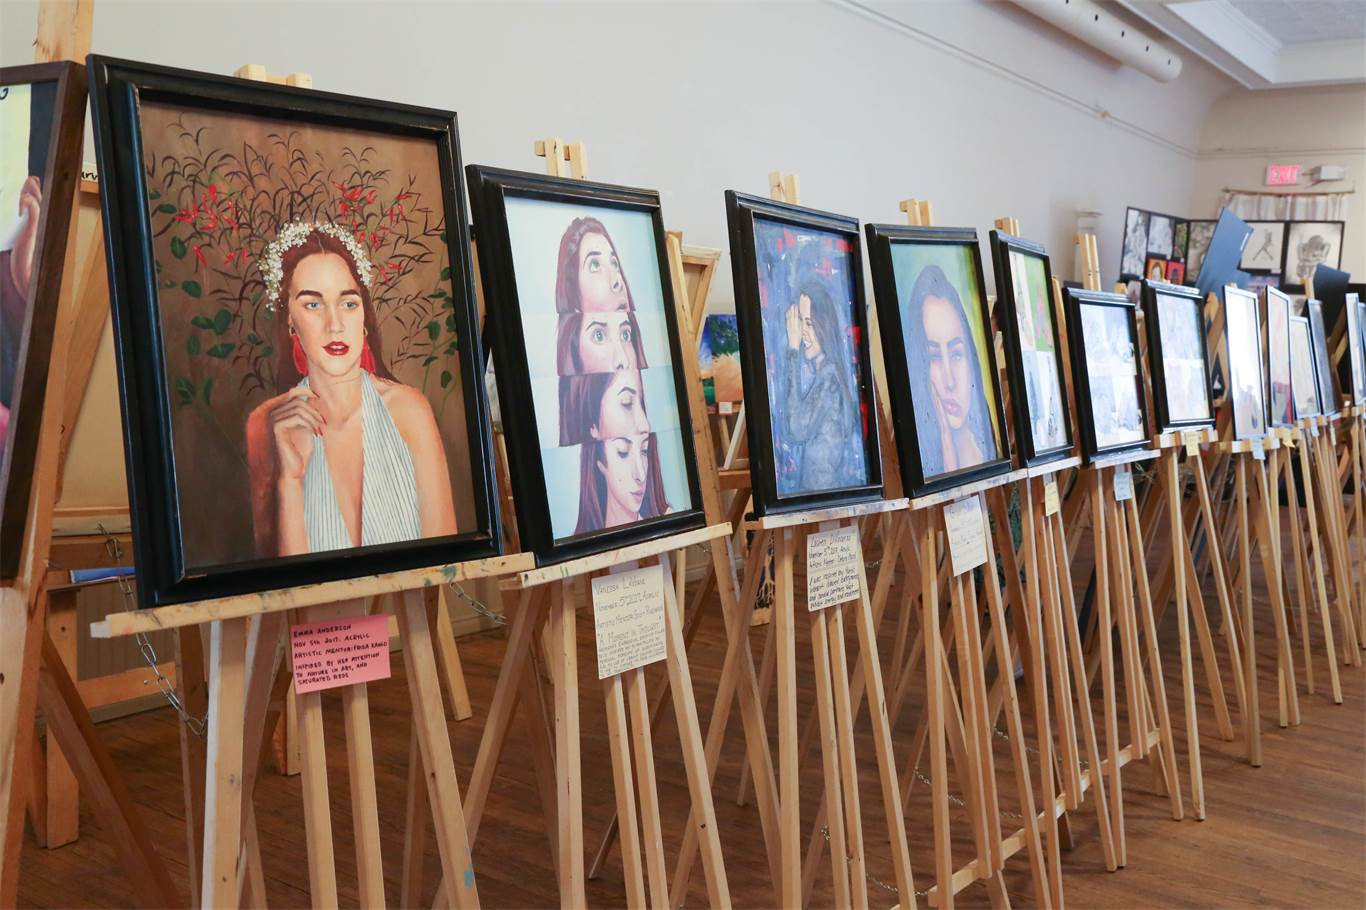 Secondary art exhibit adds to Hamilton's Art Crawl